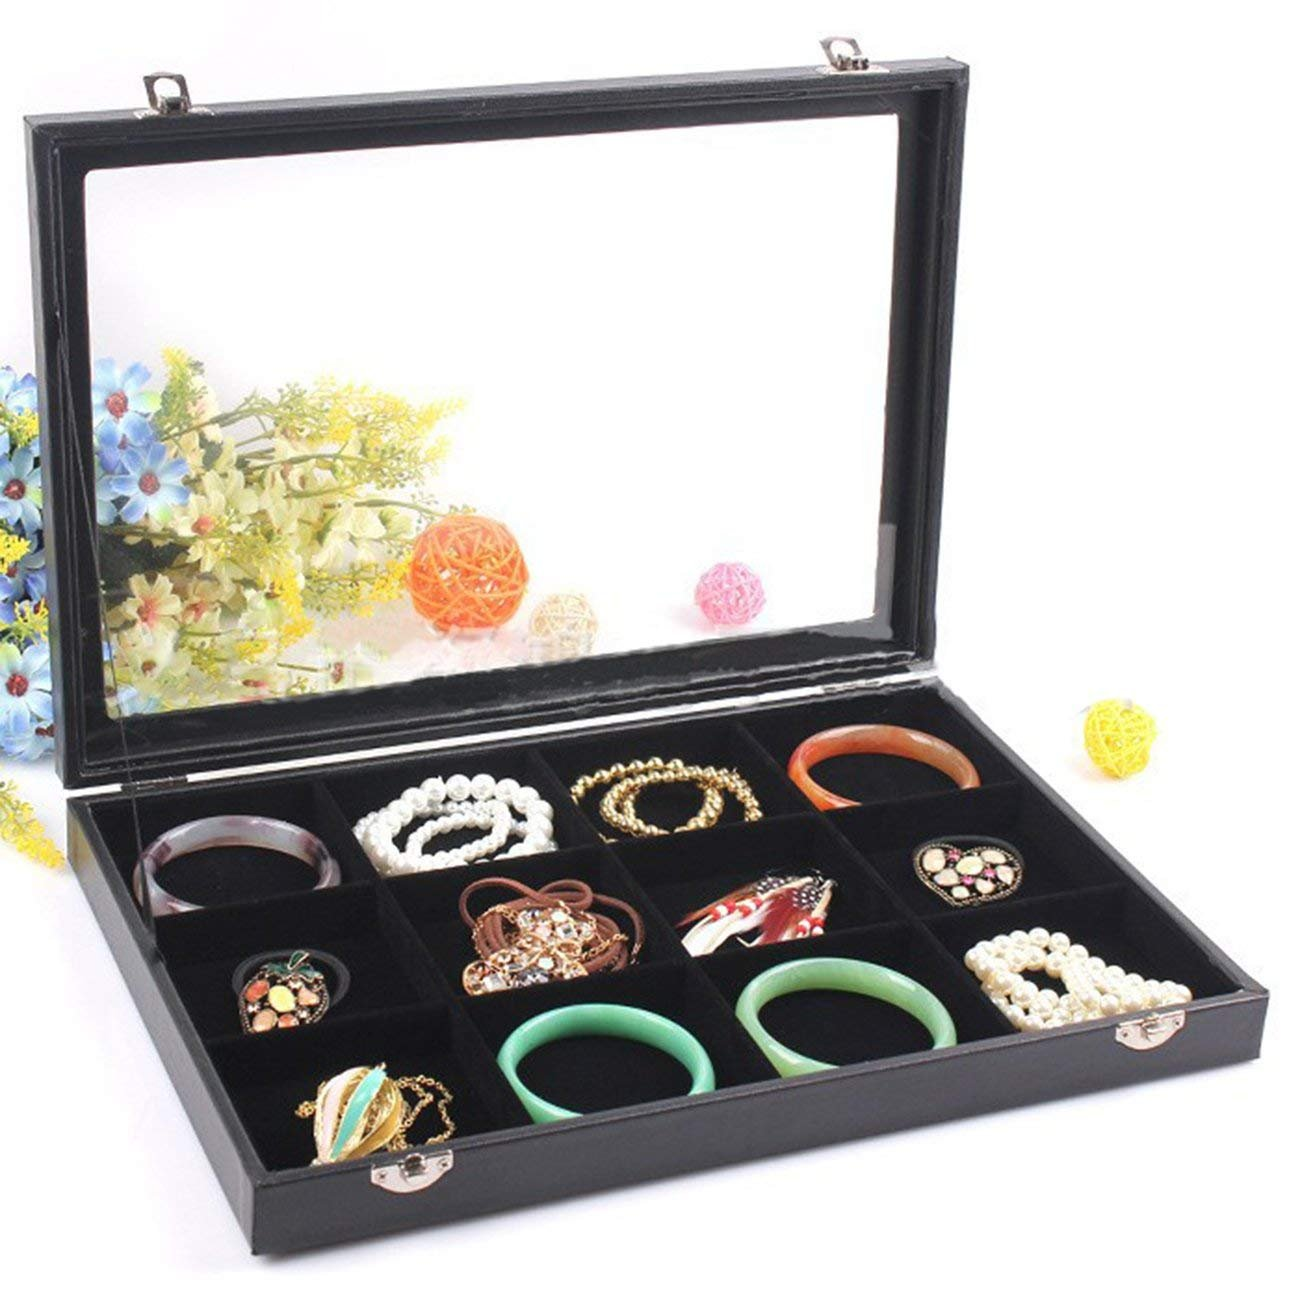 RJ Displays- Black Velvet Decorative 12 Grid Slot Jewelry Display Box Tray Clear Glass Top/Dresser Top Pendant Ring Earrings Bracelets Coins Cuff-link Jewelry Gemstones Organizer (12)